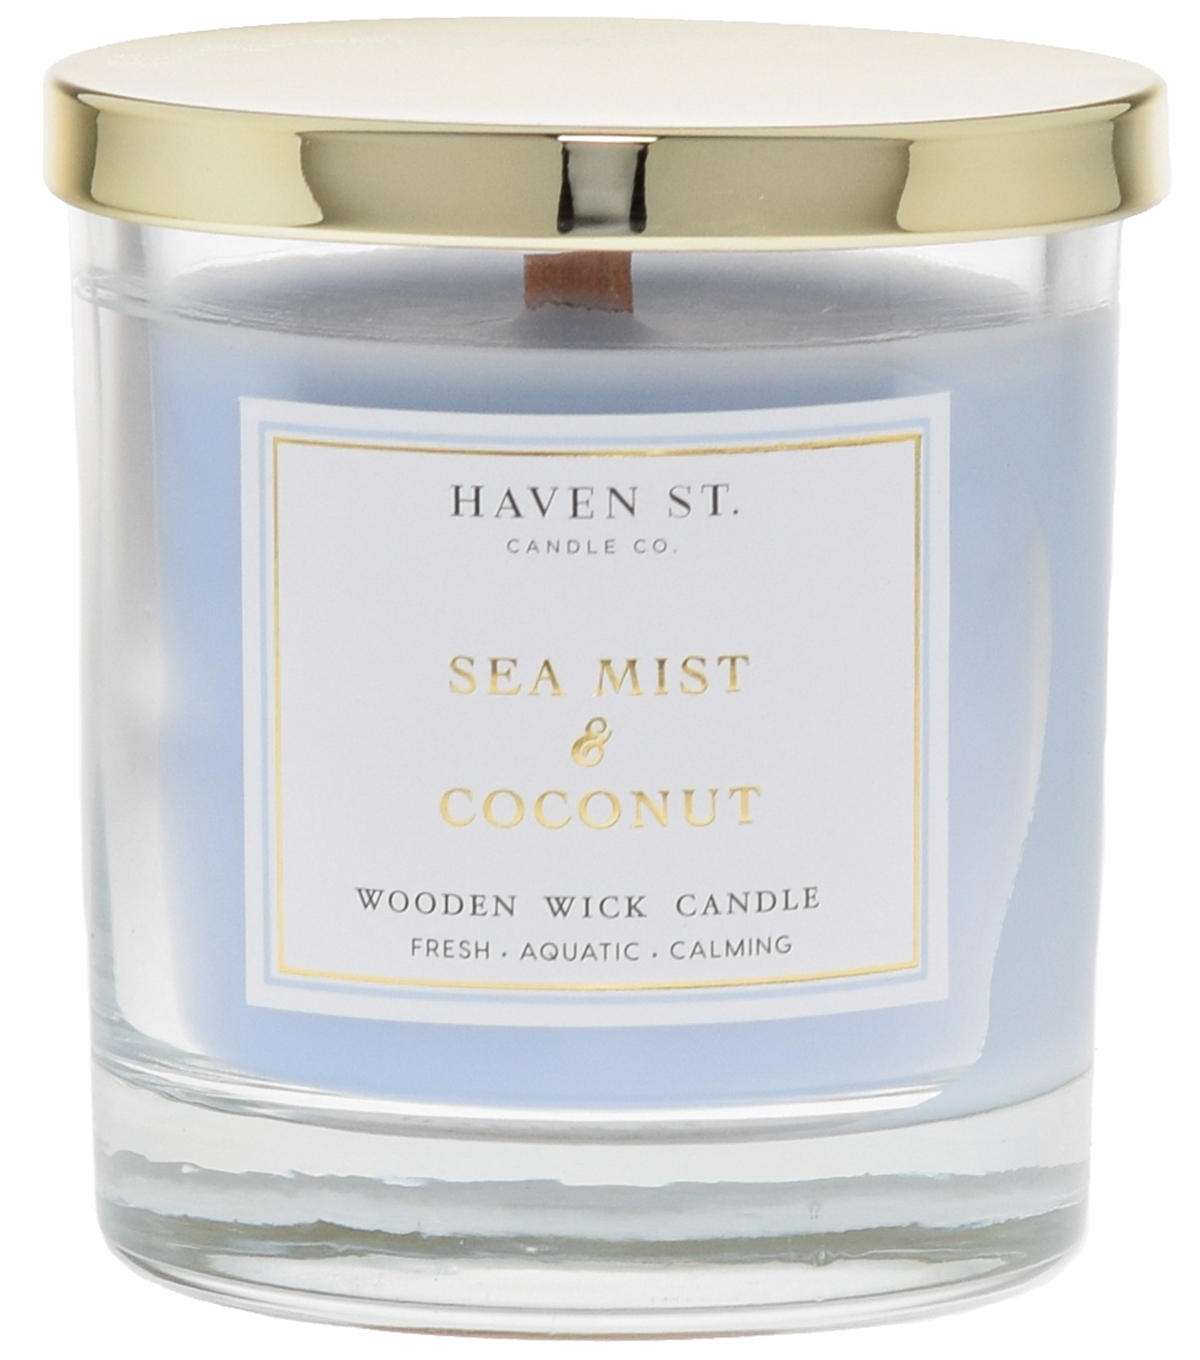 Haven St. 8oz Wooden Wick Jar Candle-Sea Mist/Coconut